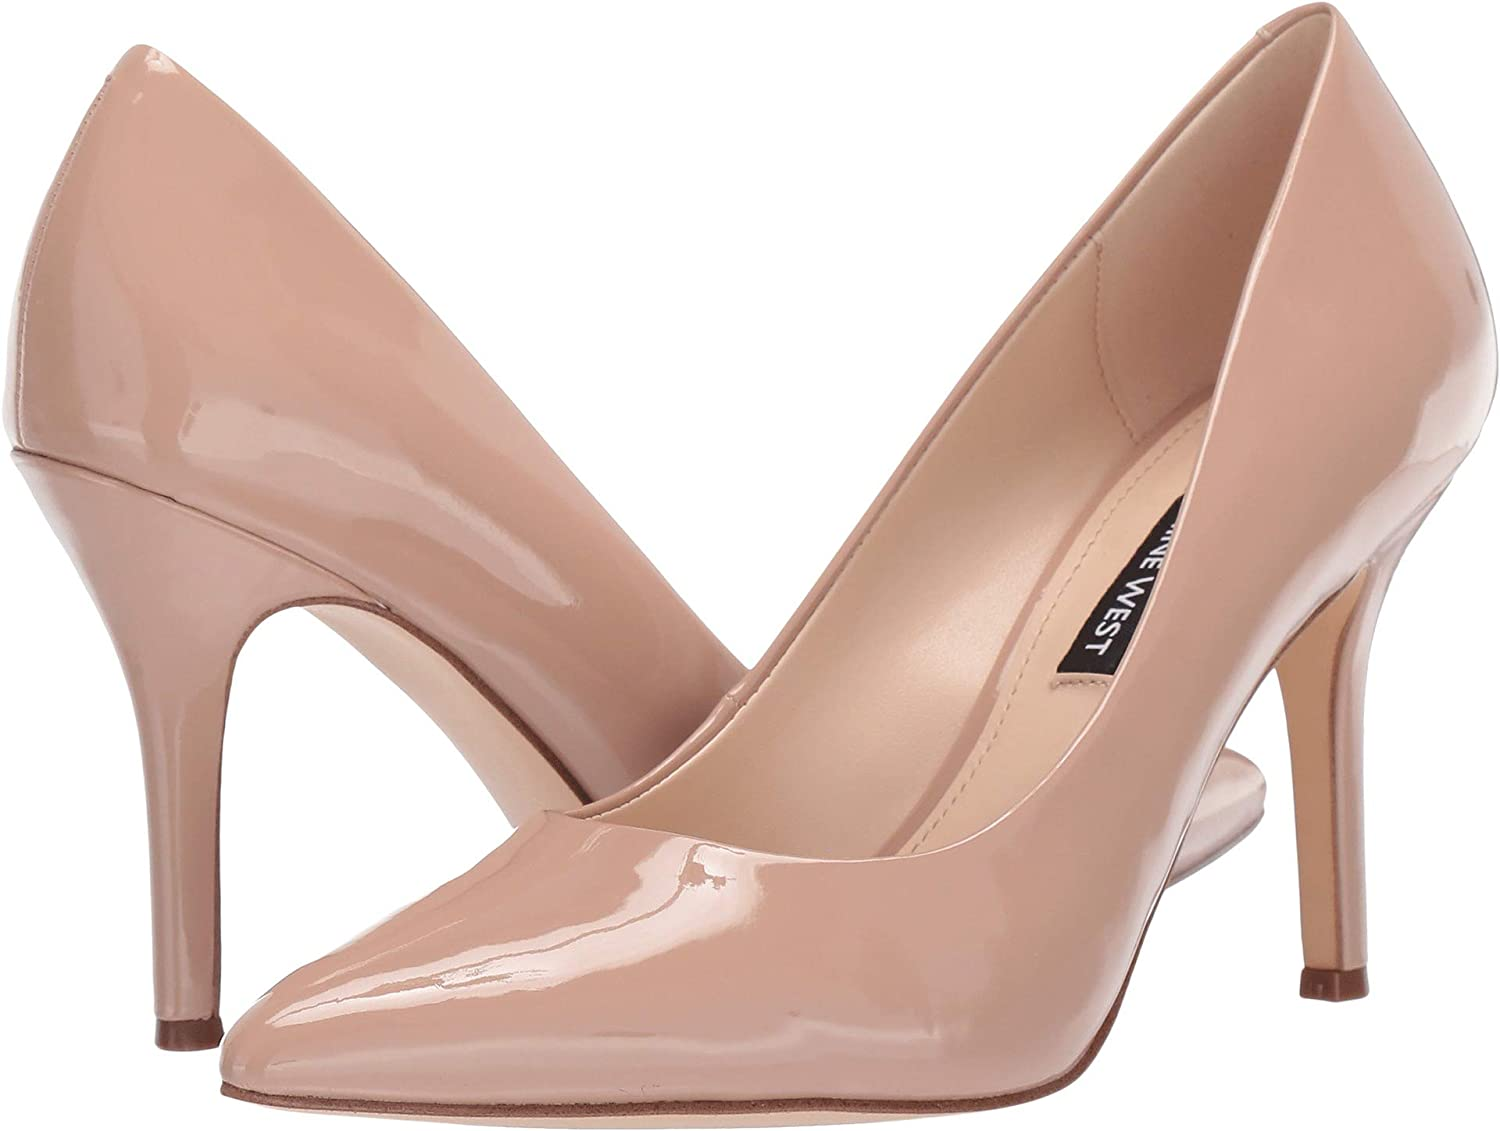 Barely Nude Nine West Women's Flax Dress Pump